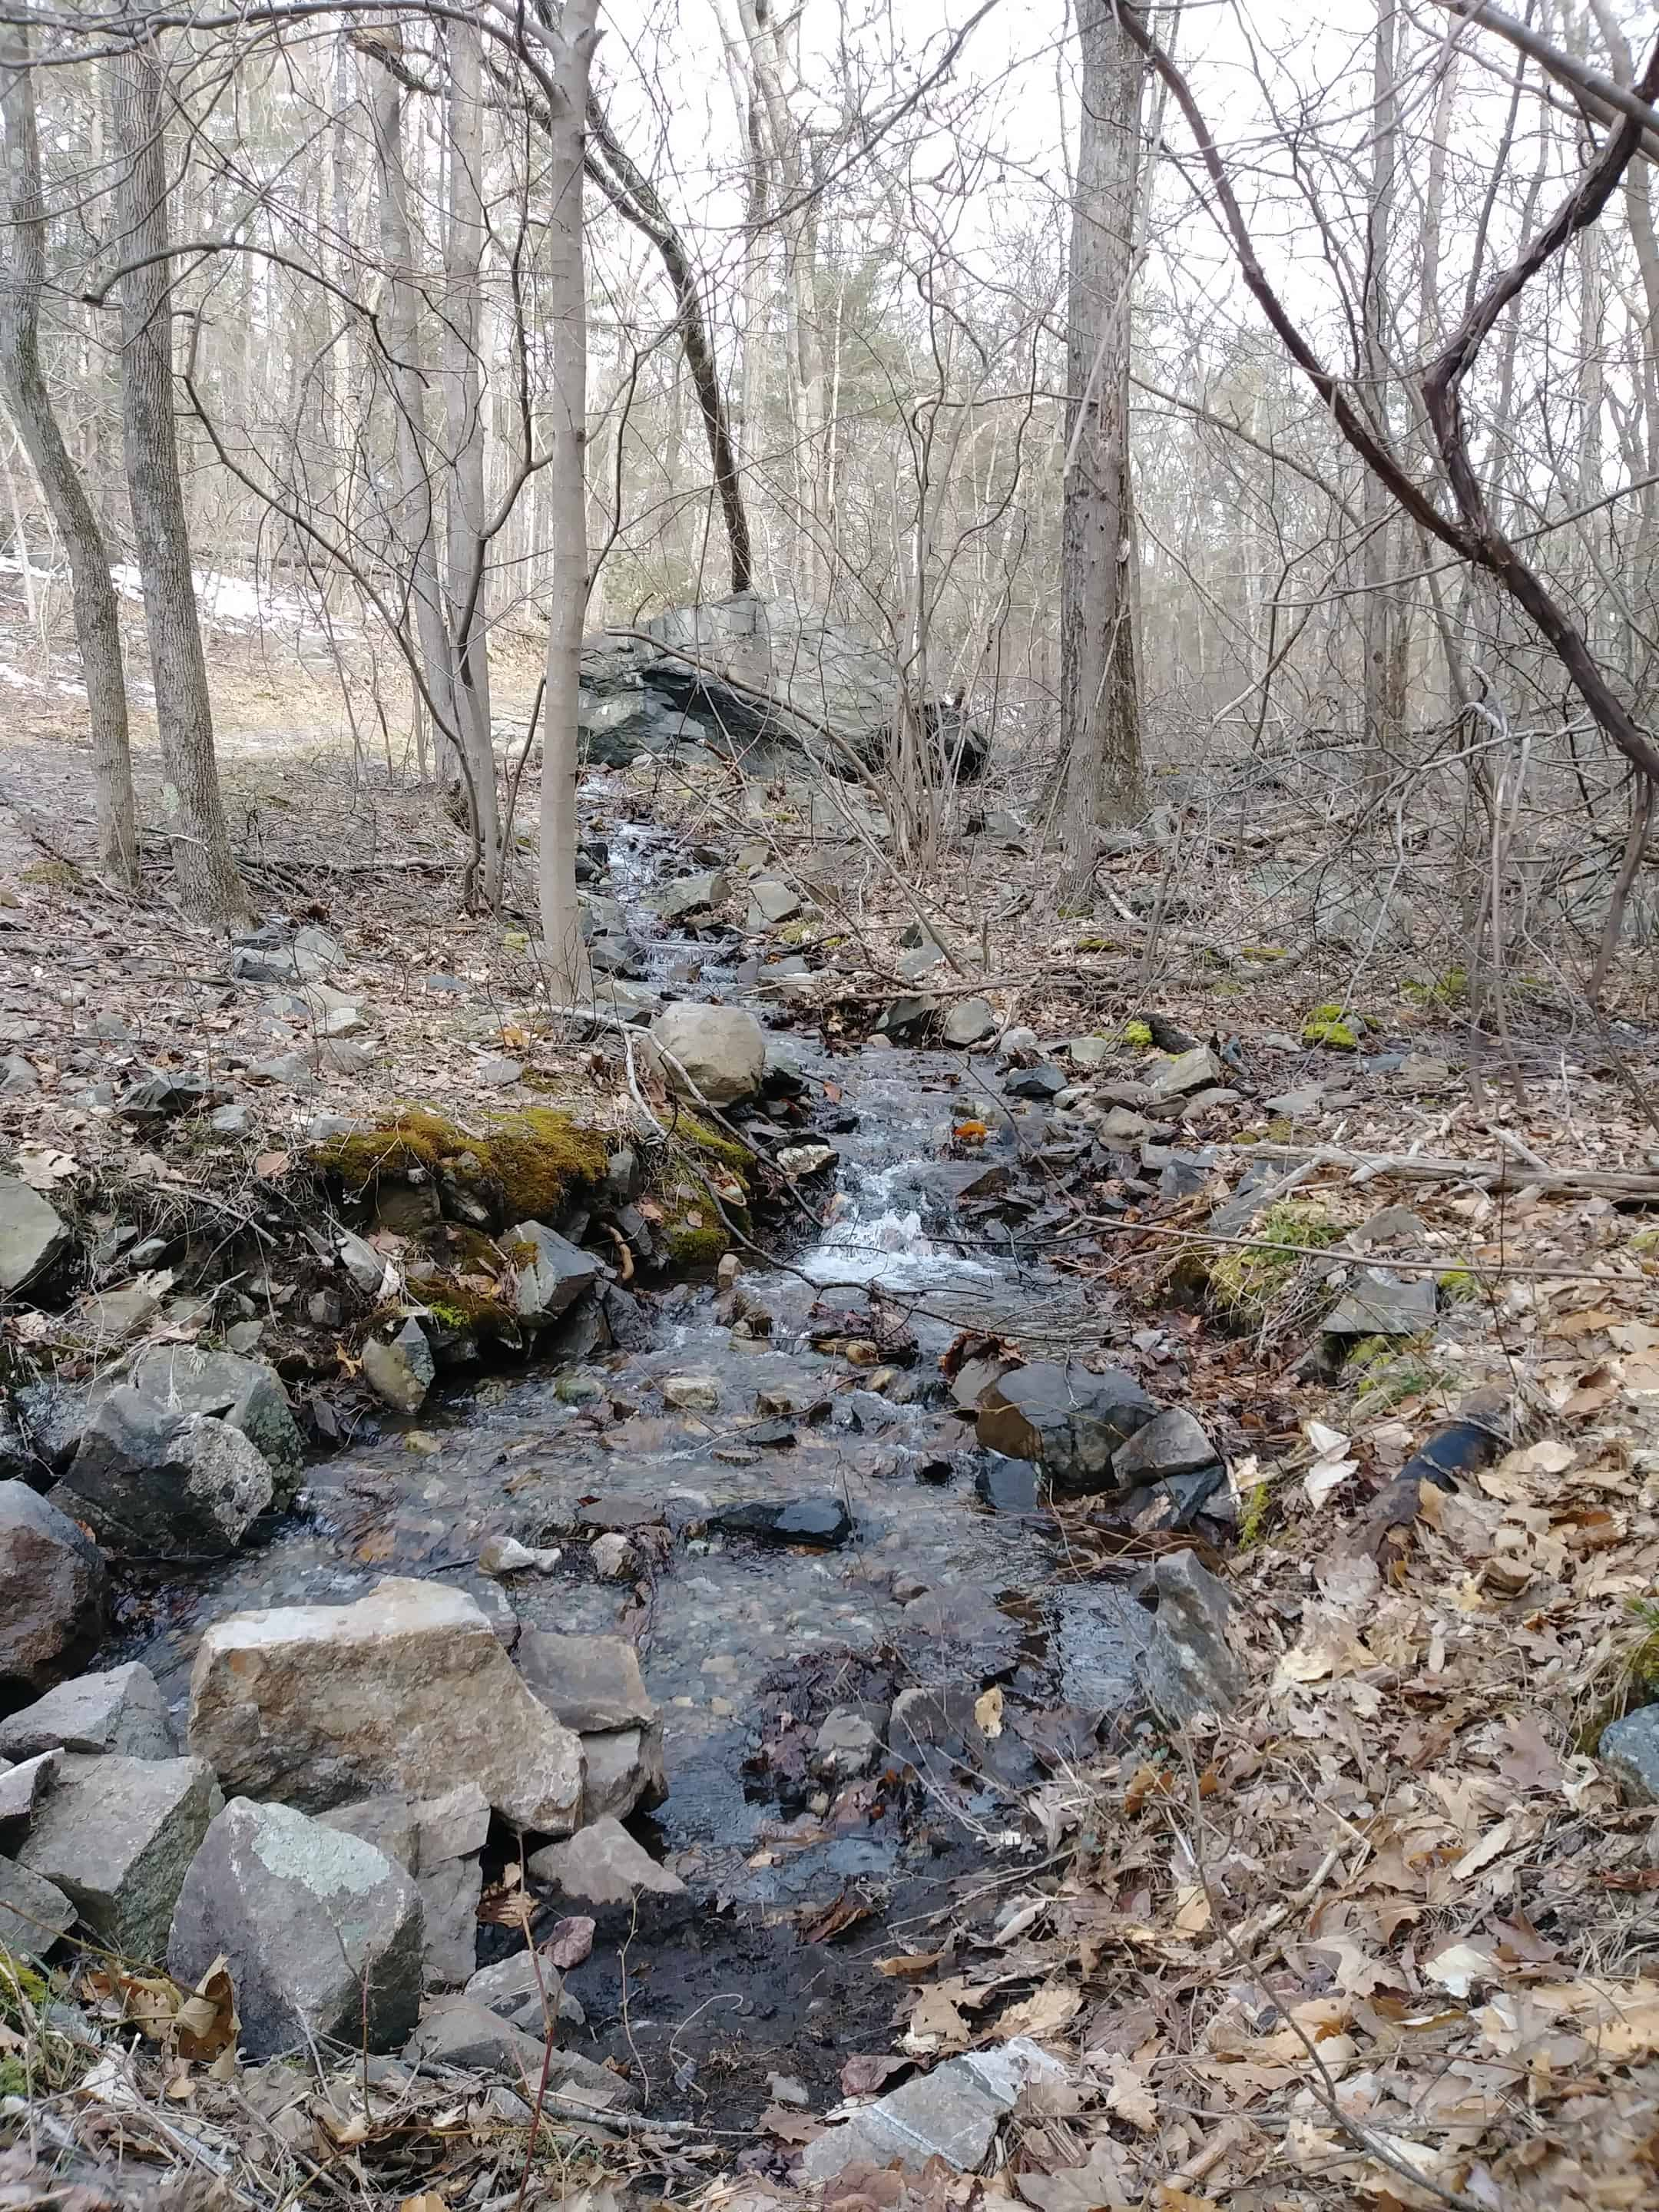 across from houghtons pond on green trail